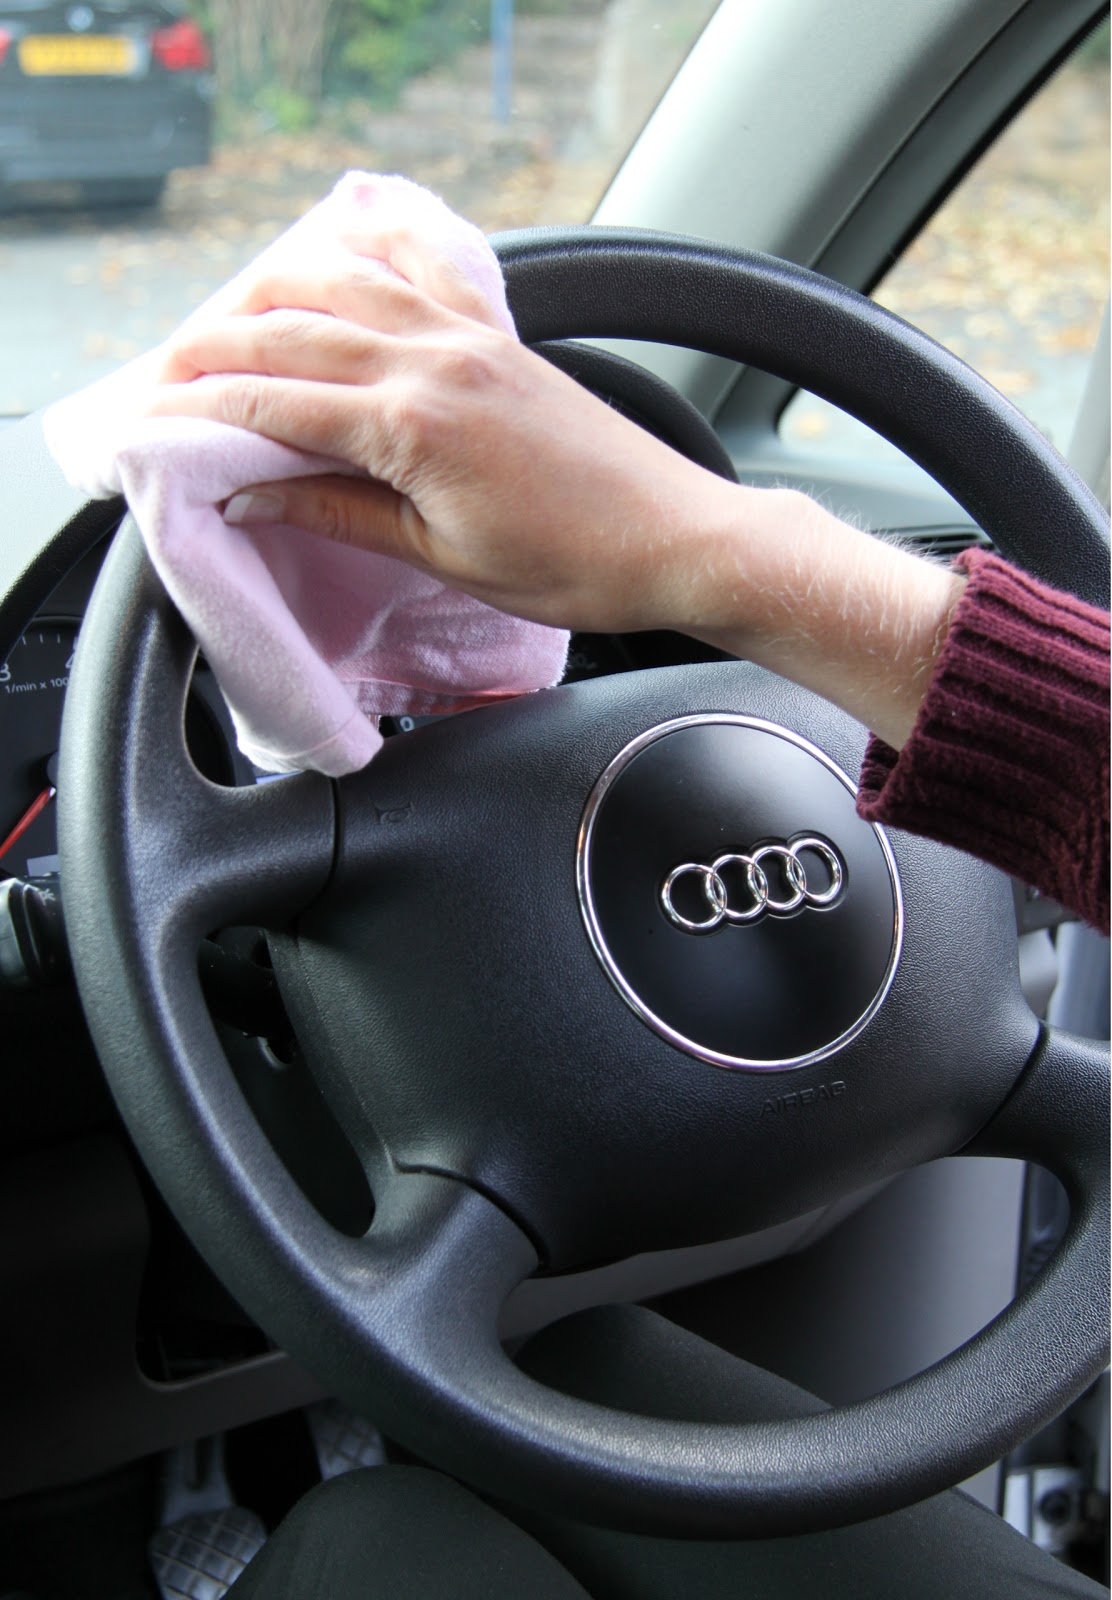 Dri pak blog keep your car interior clean and fresh How to keep your car exterior clean